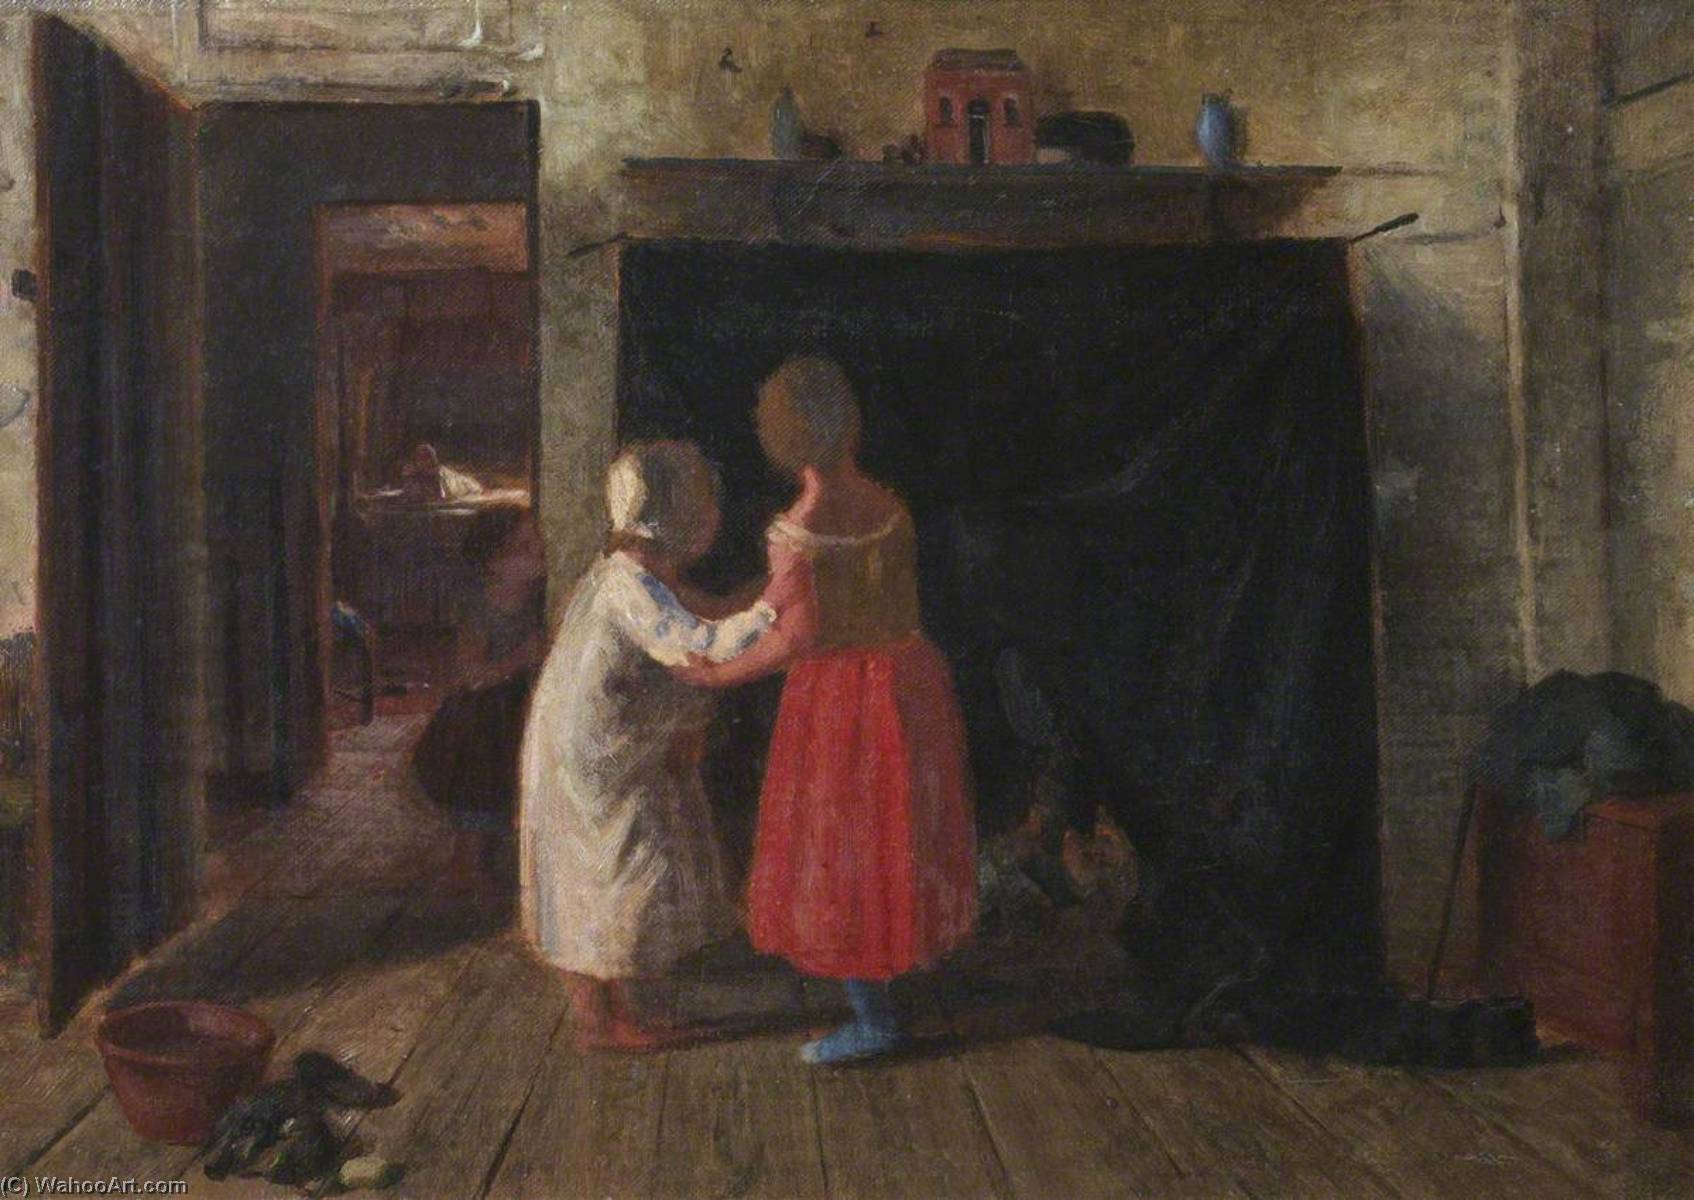 interni casa, olio su tela di Thomas Stuart Smith